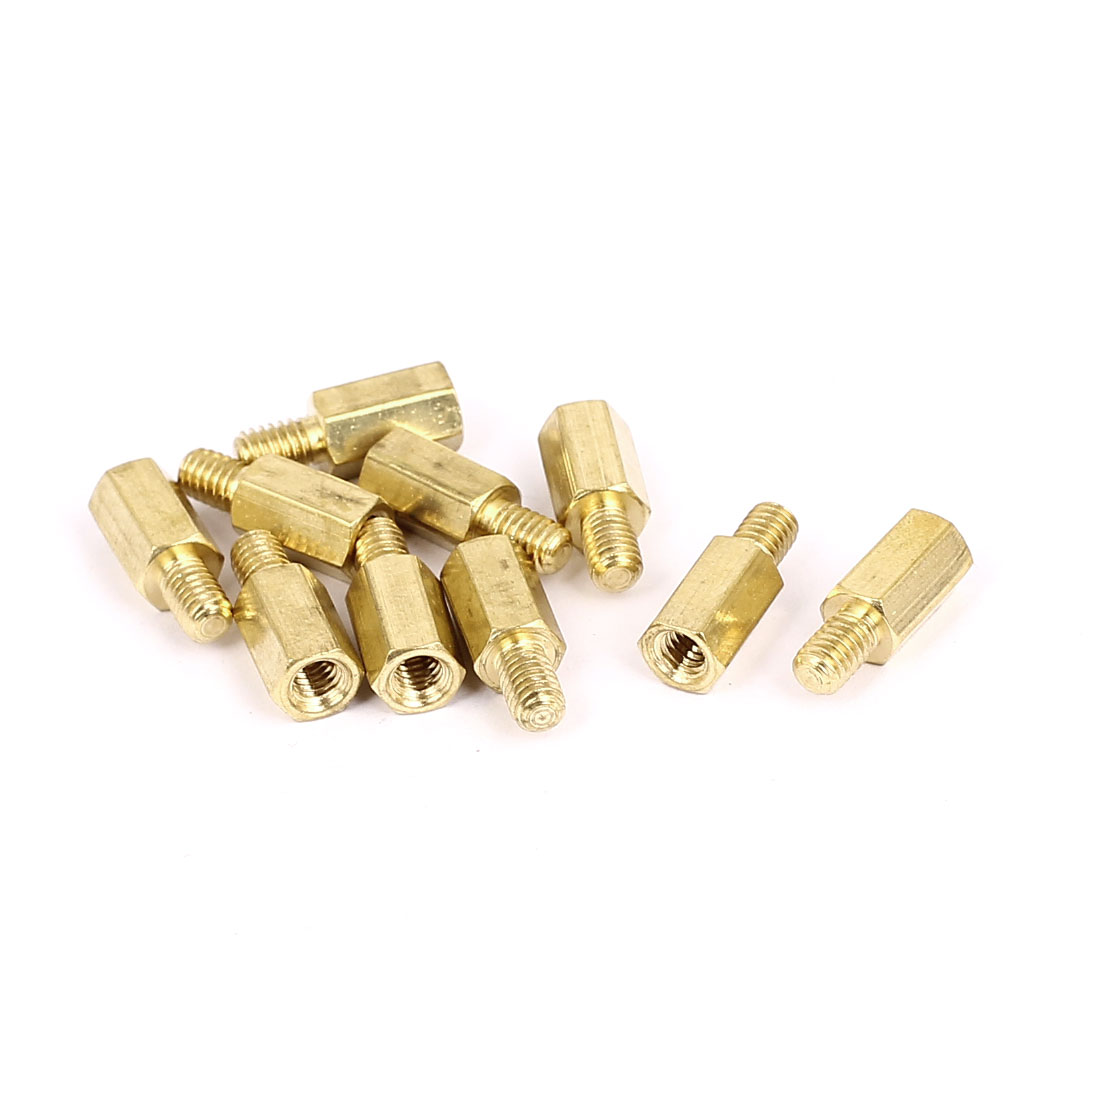 M4x10mm+6mm Male to Female Thread 0.7mm Pitch Brass Hex Standoff Spacer 10Pcs